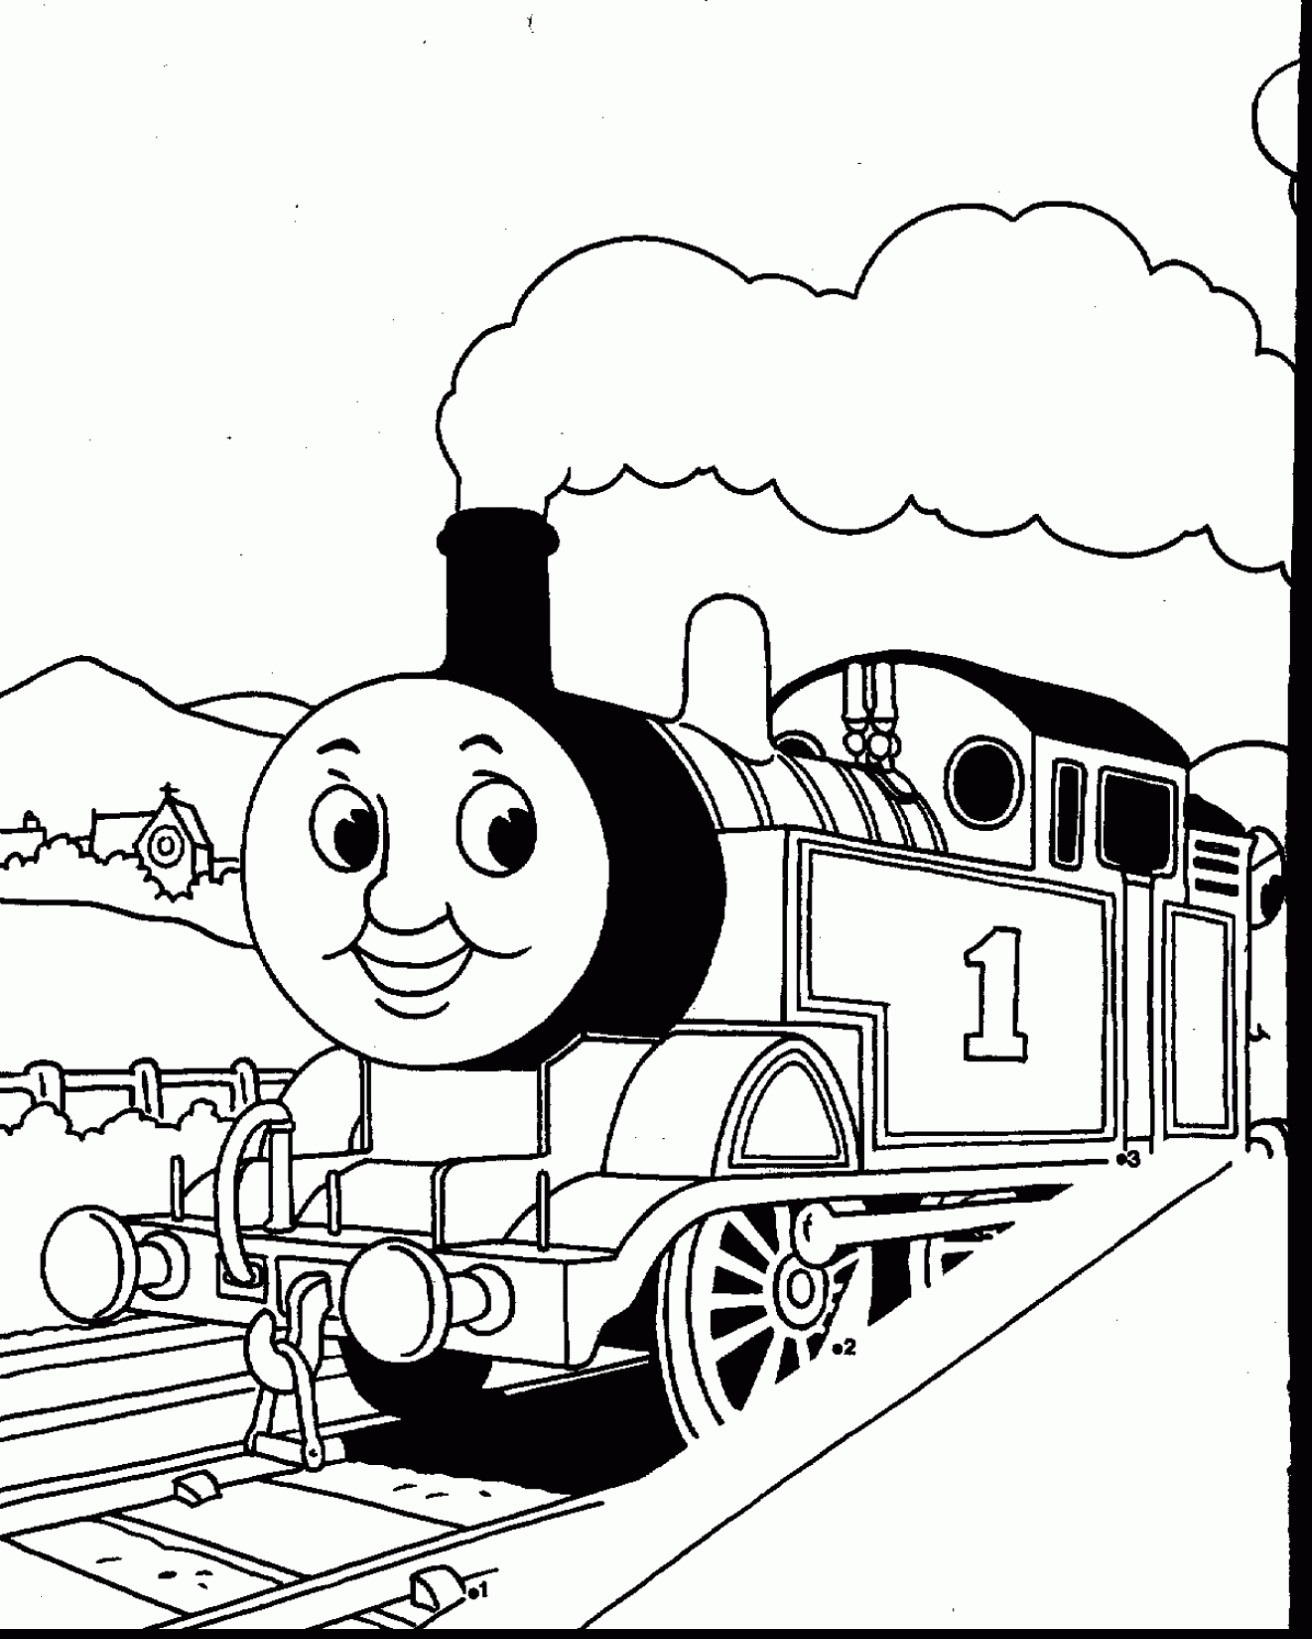 Free thomas train coloring pages simple train coloring page thomas the train coloring pages best